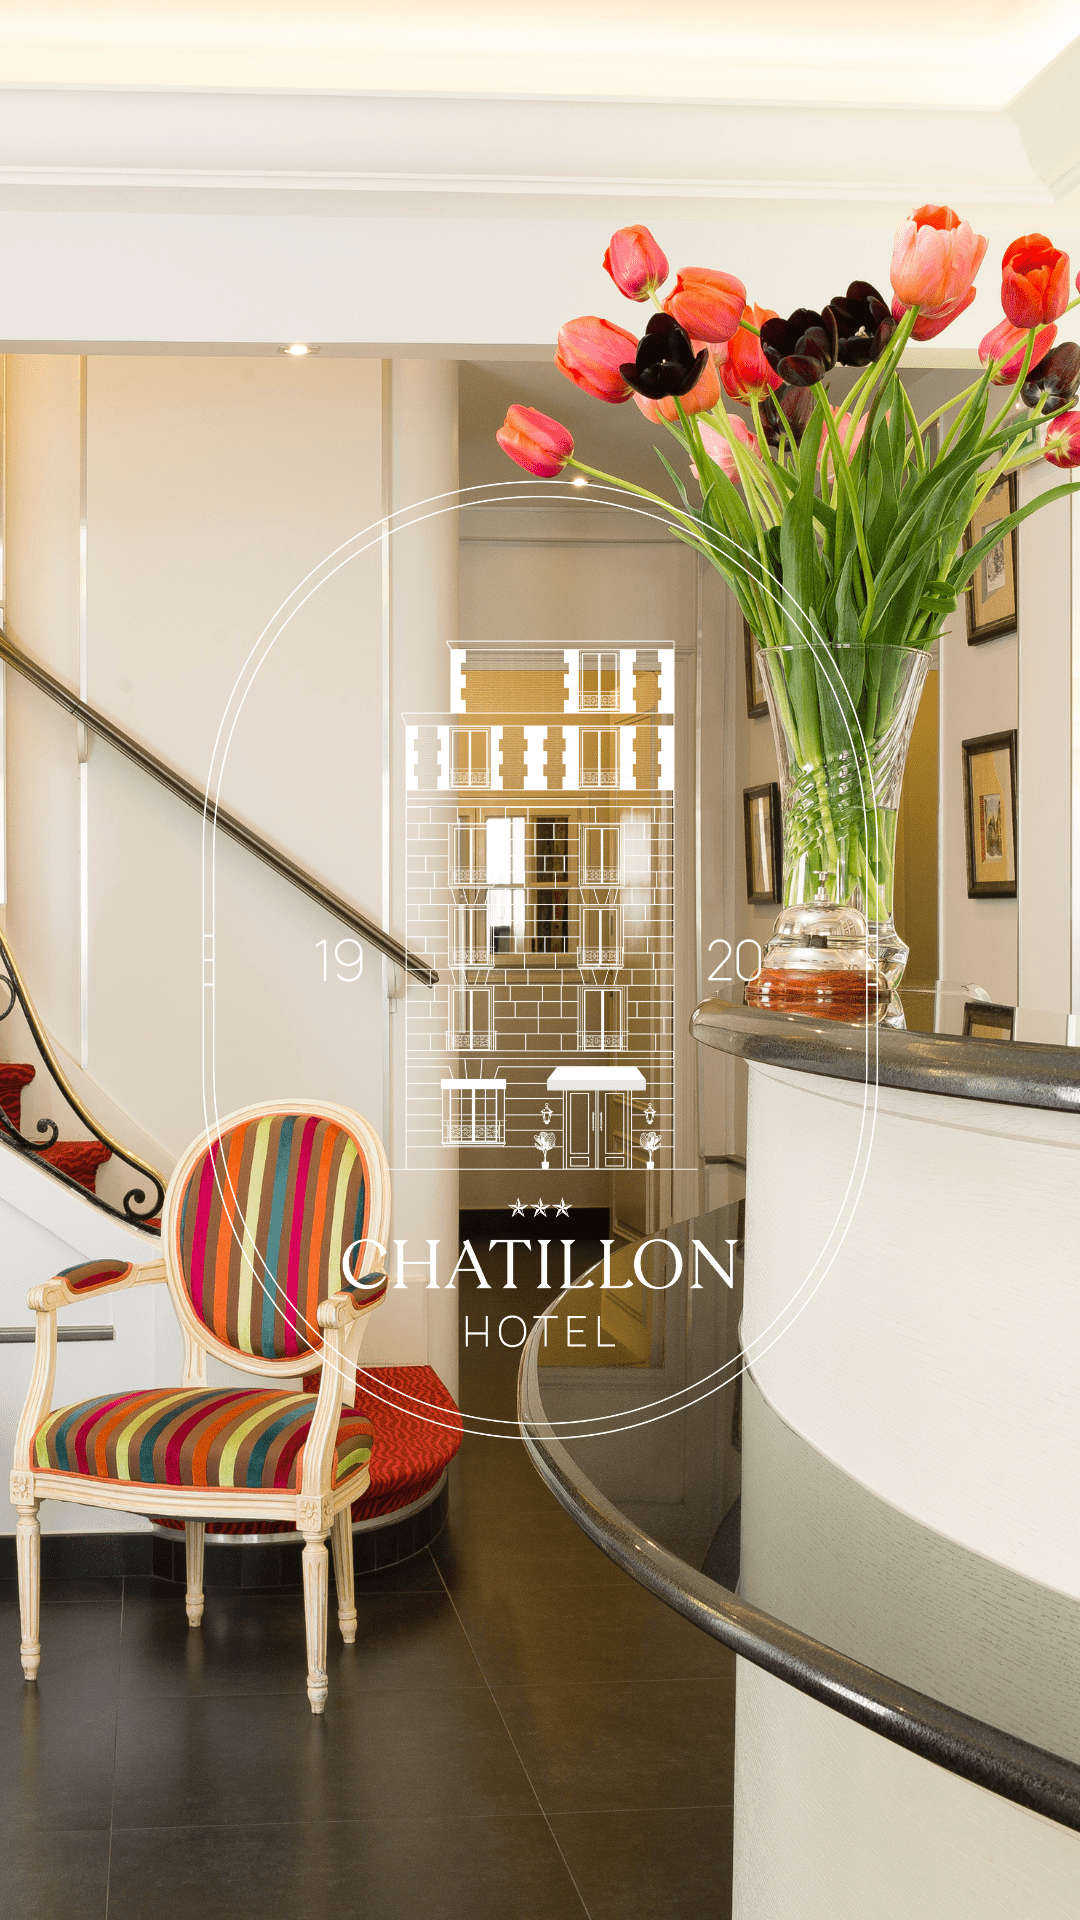 724/CHATILLON/Hotel/1_Couvertures_pics/Slider-home/MOBILE/Hotel_Chatillon_-_Reception_Mobile.png